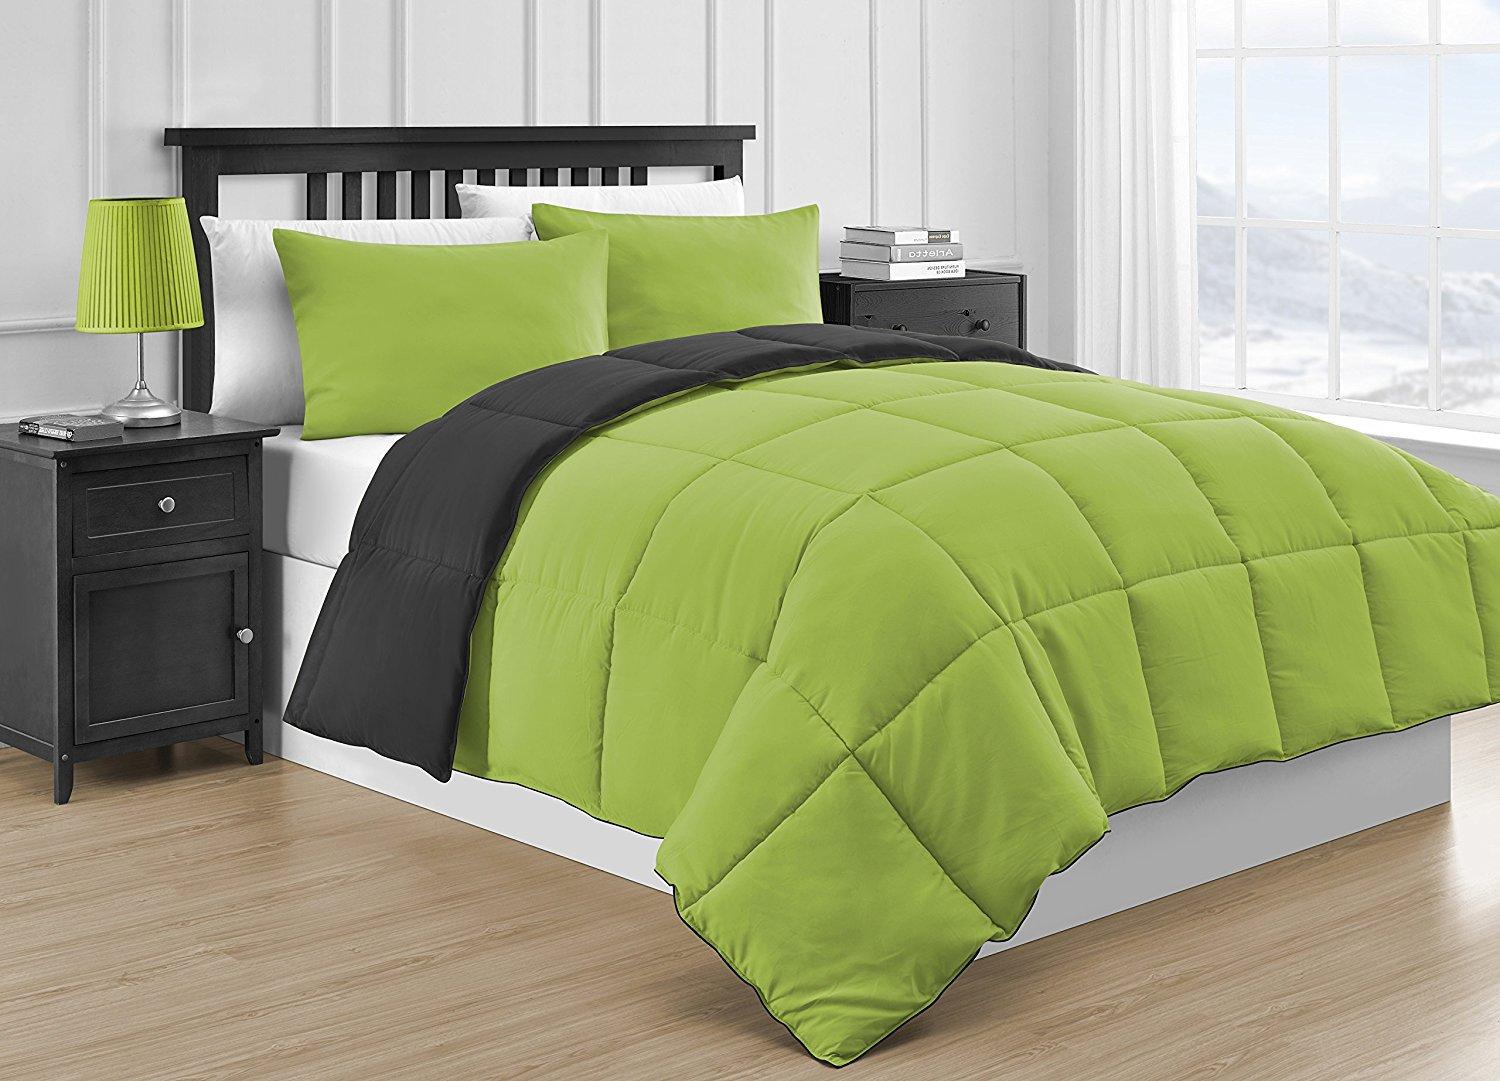 Comfy Bedding Reversible Microfiber Black & Lime Green 3-Piece Comforter Set (Queen, Black & Lime Green)